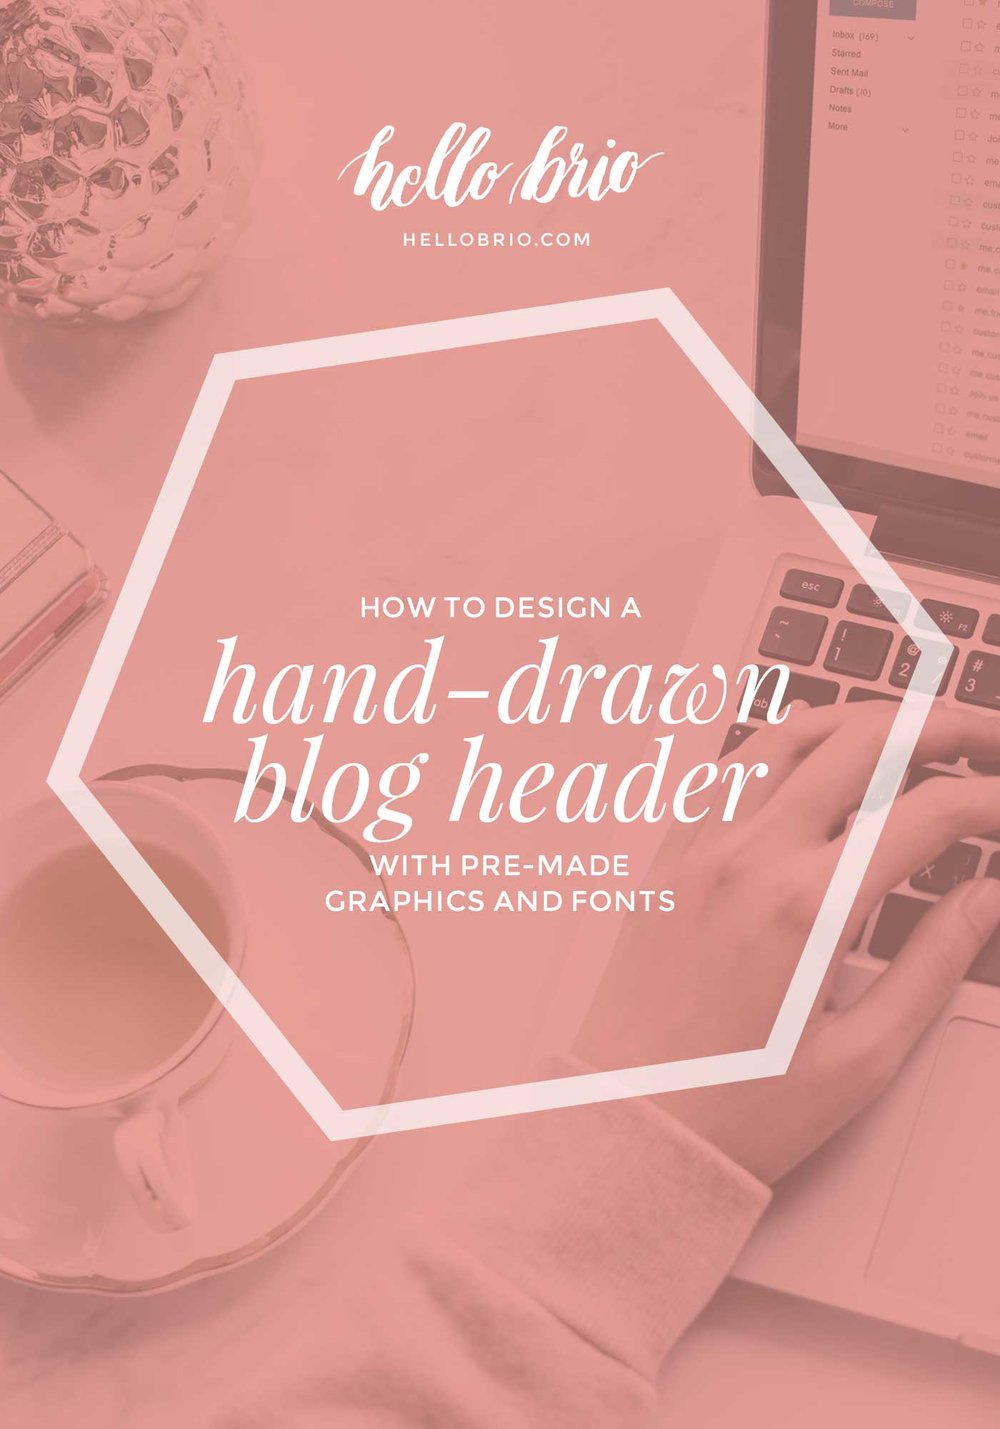 How to design a hand-drawn blog header with premade graphics and fonts